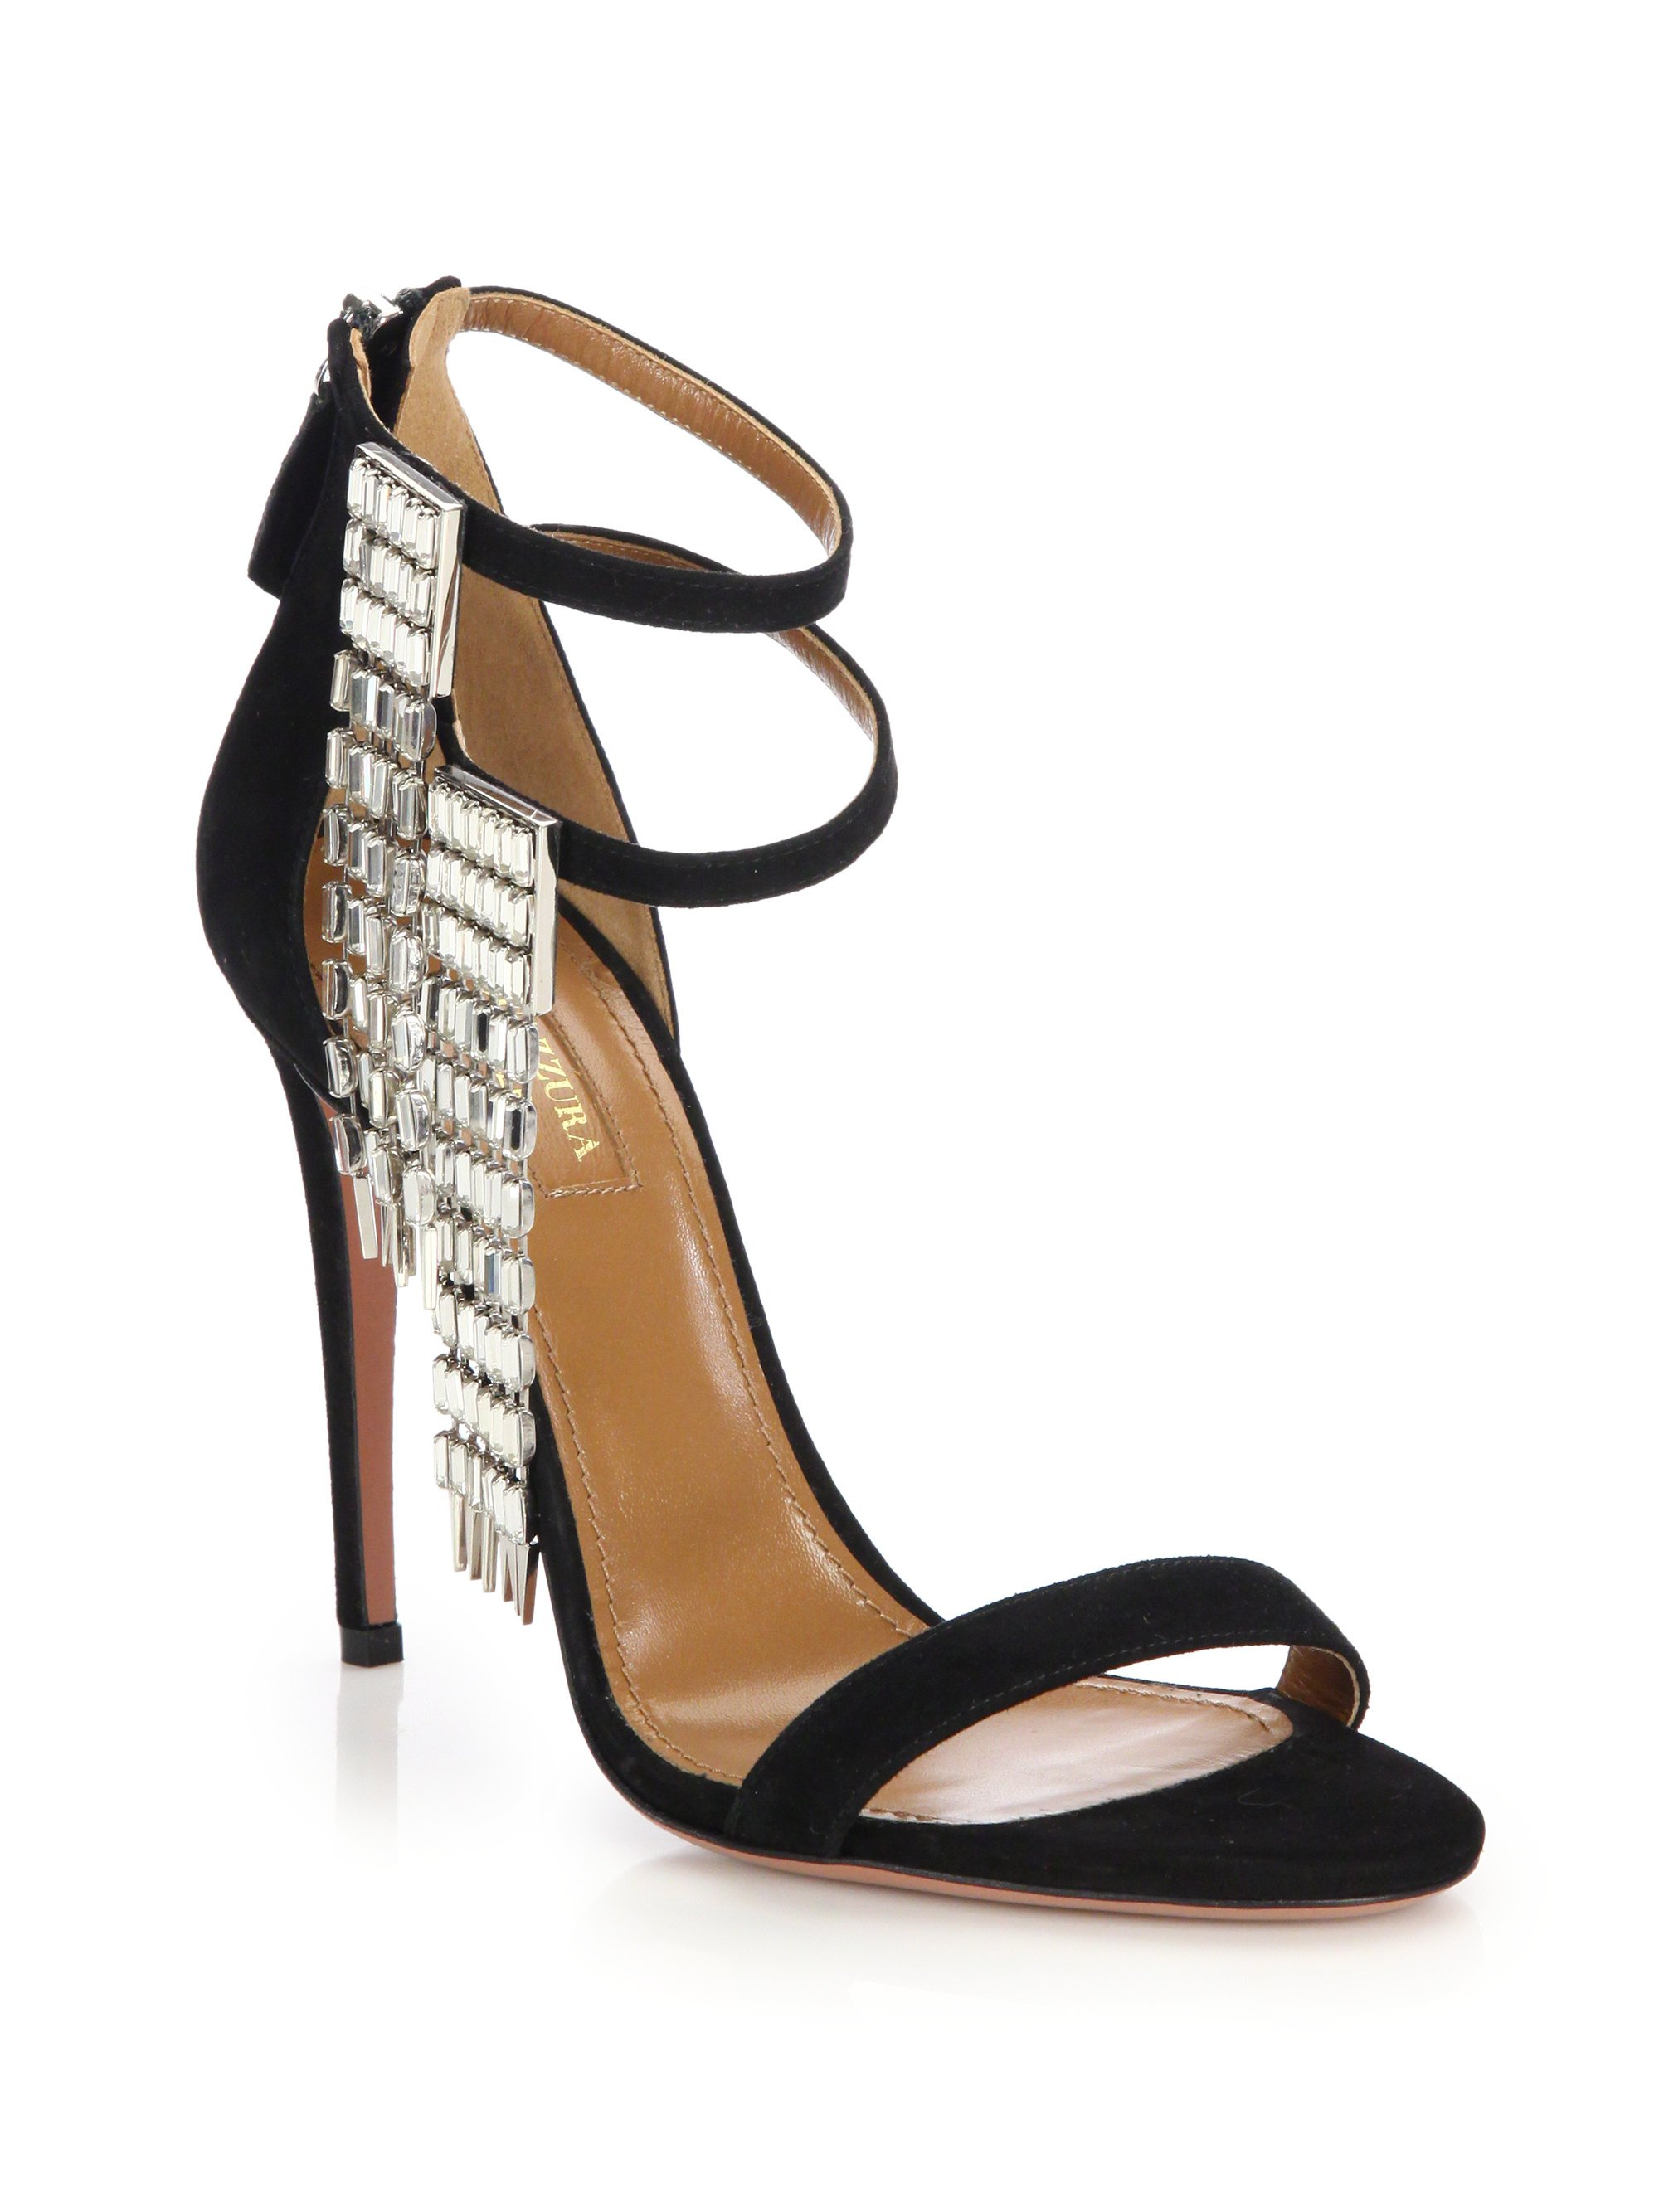 Lyst - Aquazzura My De... Ivanka Trump Shoes Nordstrom